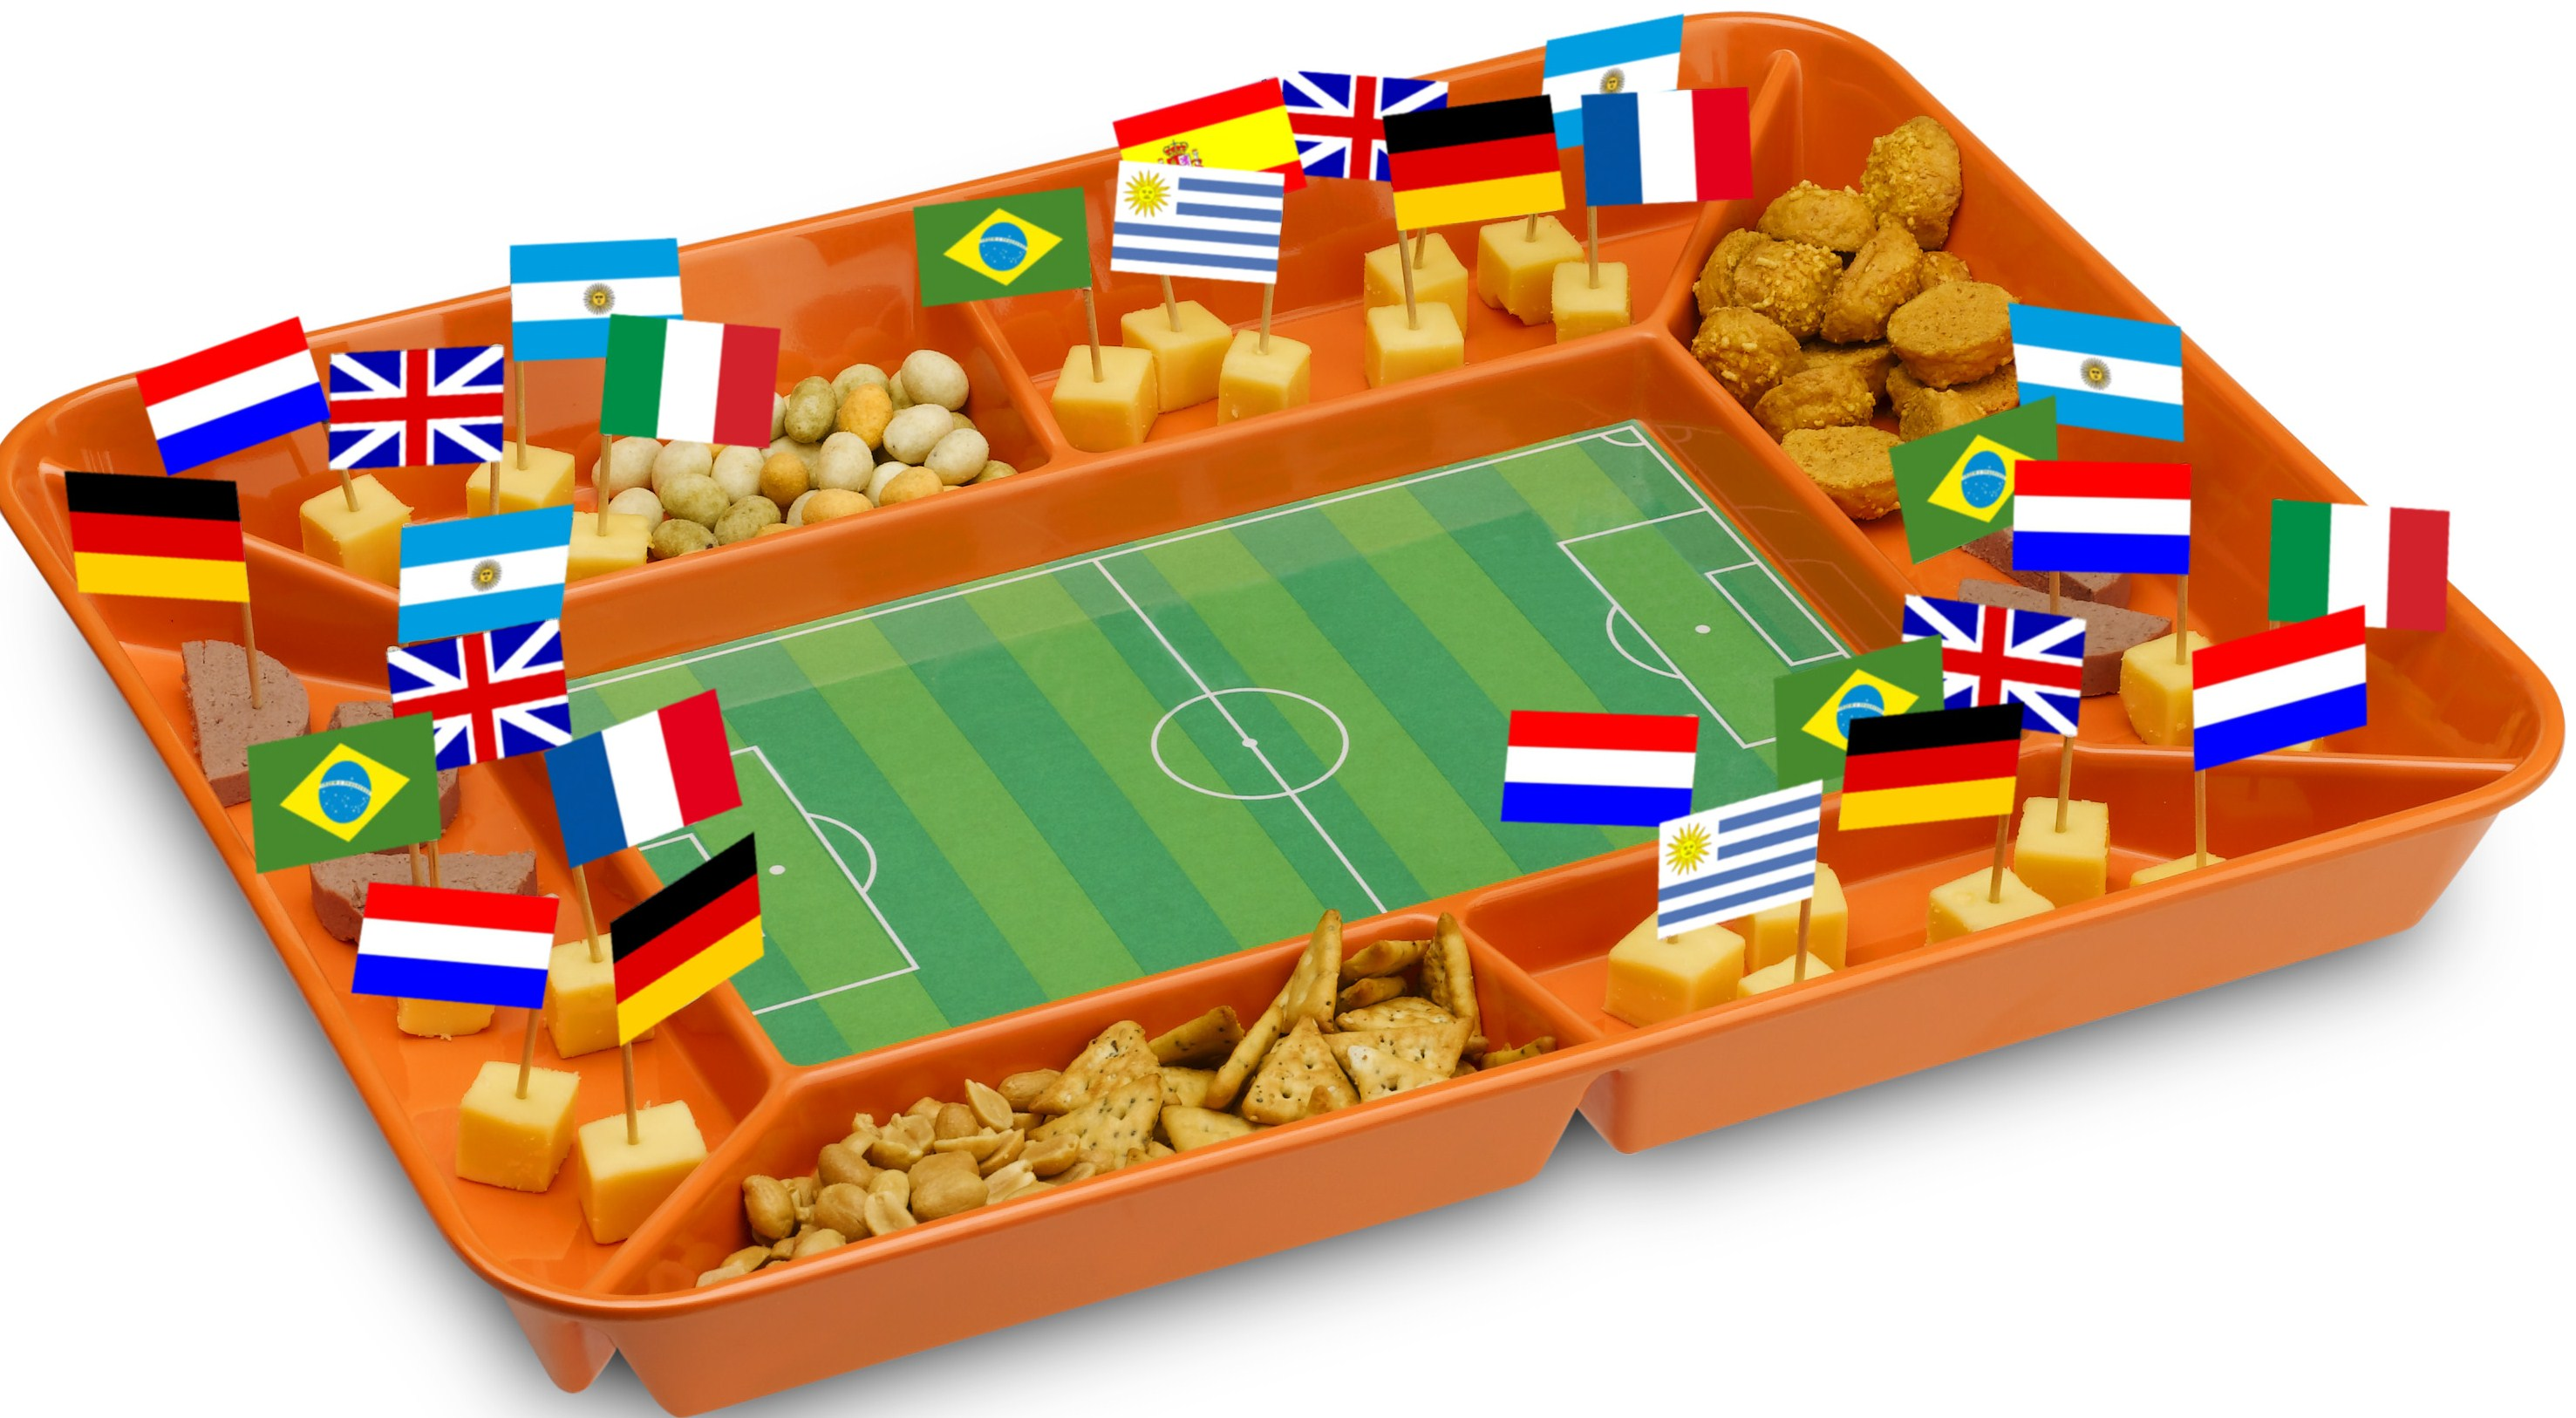 Les goodies de la coupe du monde 2014 au